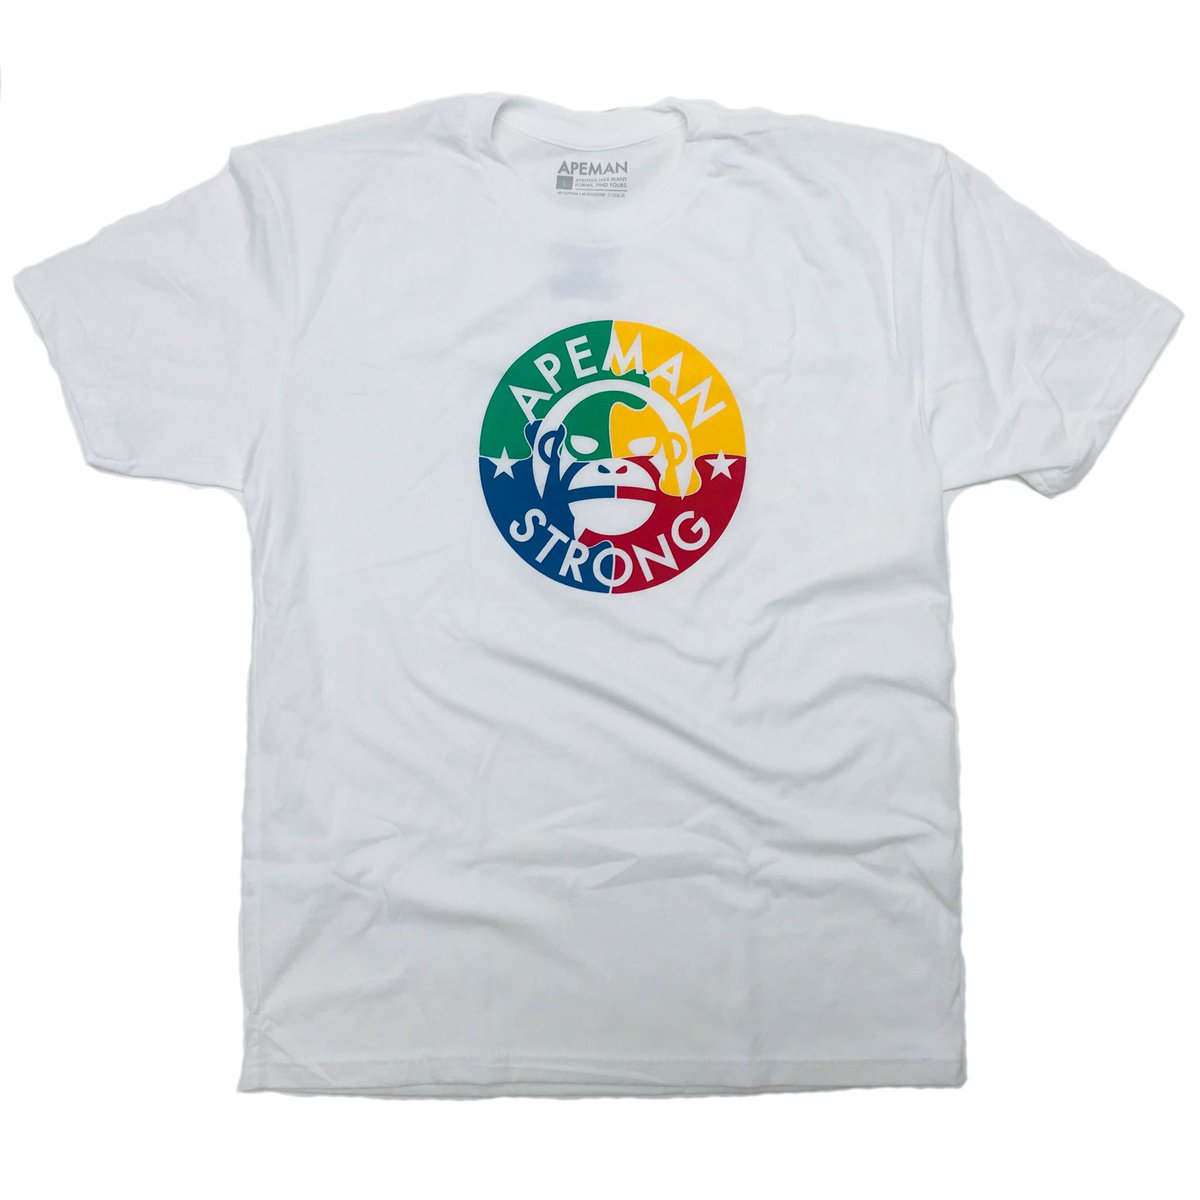 Our AUTISM Tee is restocked in men's, women's, and kid's. $5 of every sale is being donated to the Organization of Autism Research. apemanstrong.com